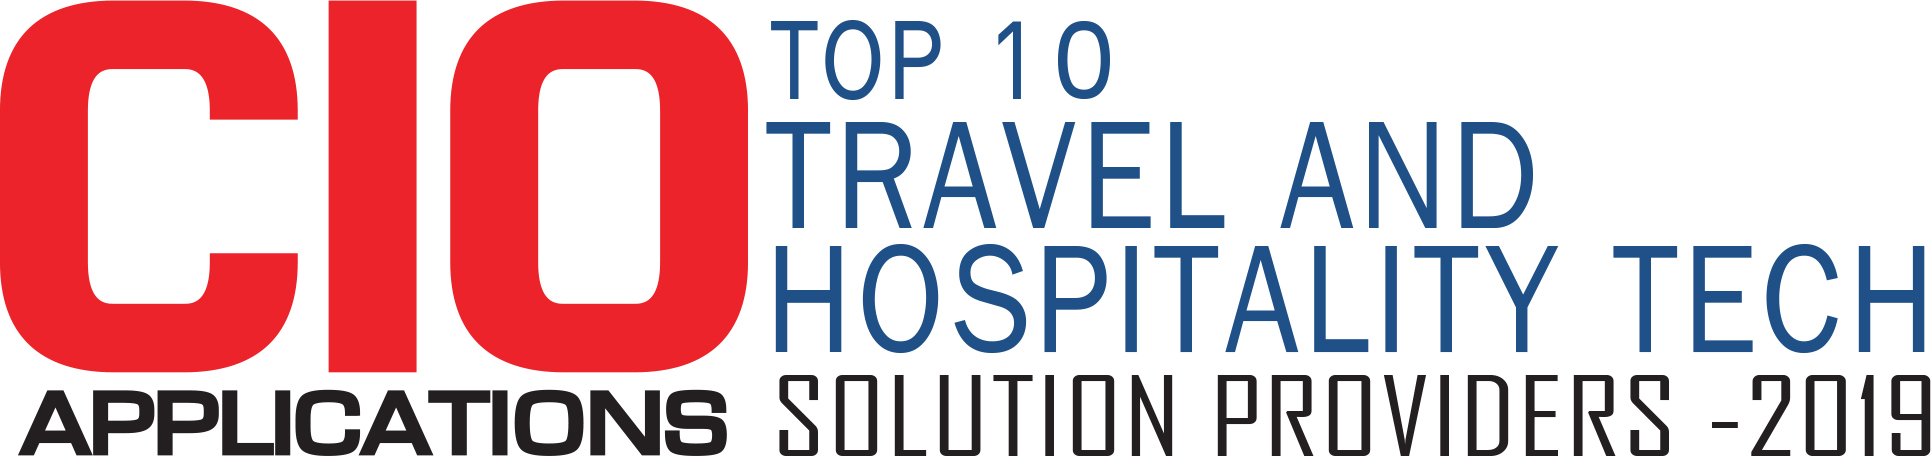 Top 10 Travel and Hospitality Tech Solution Providers - 2019